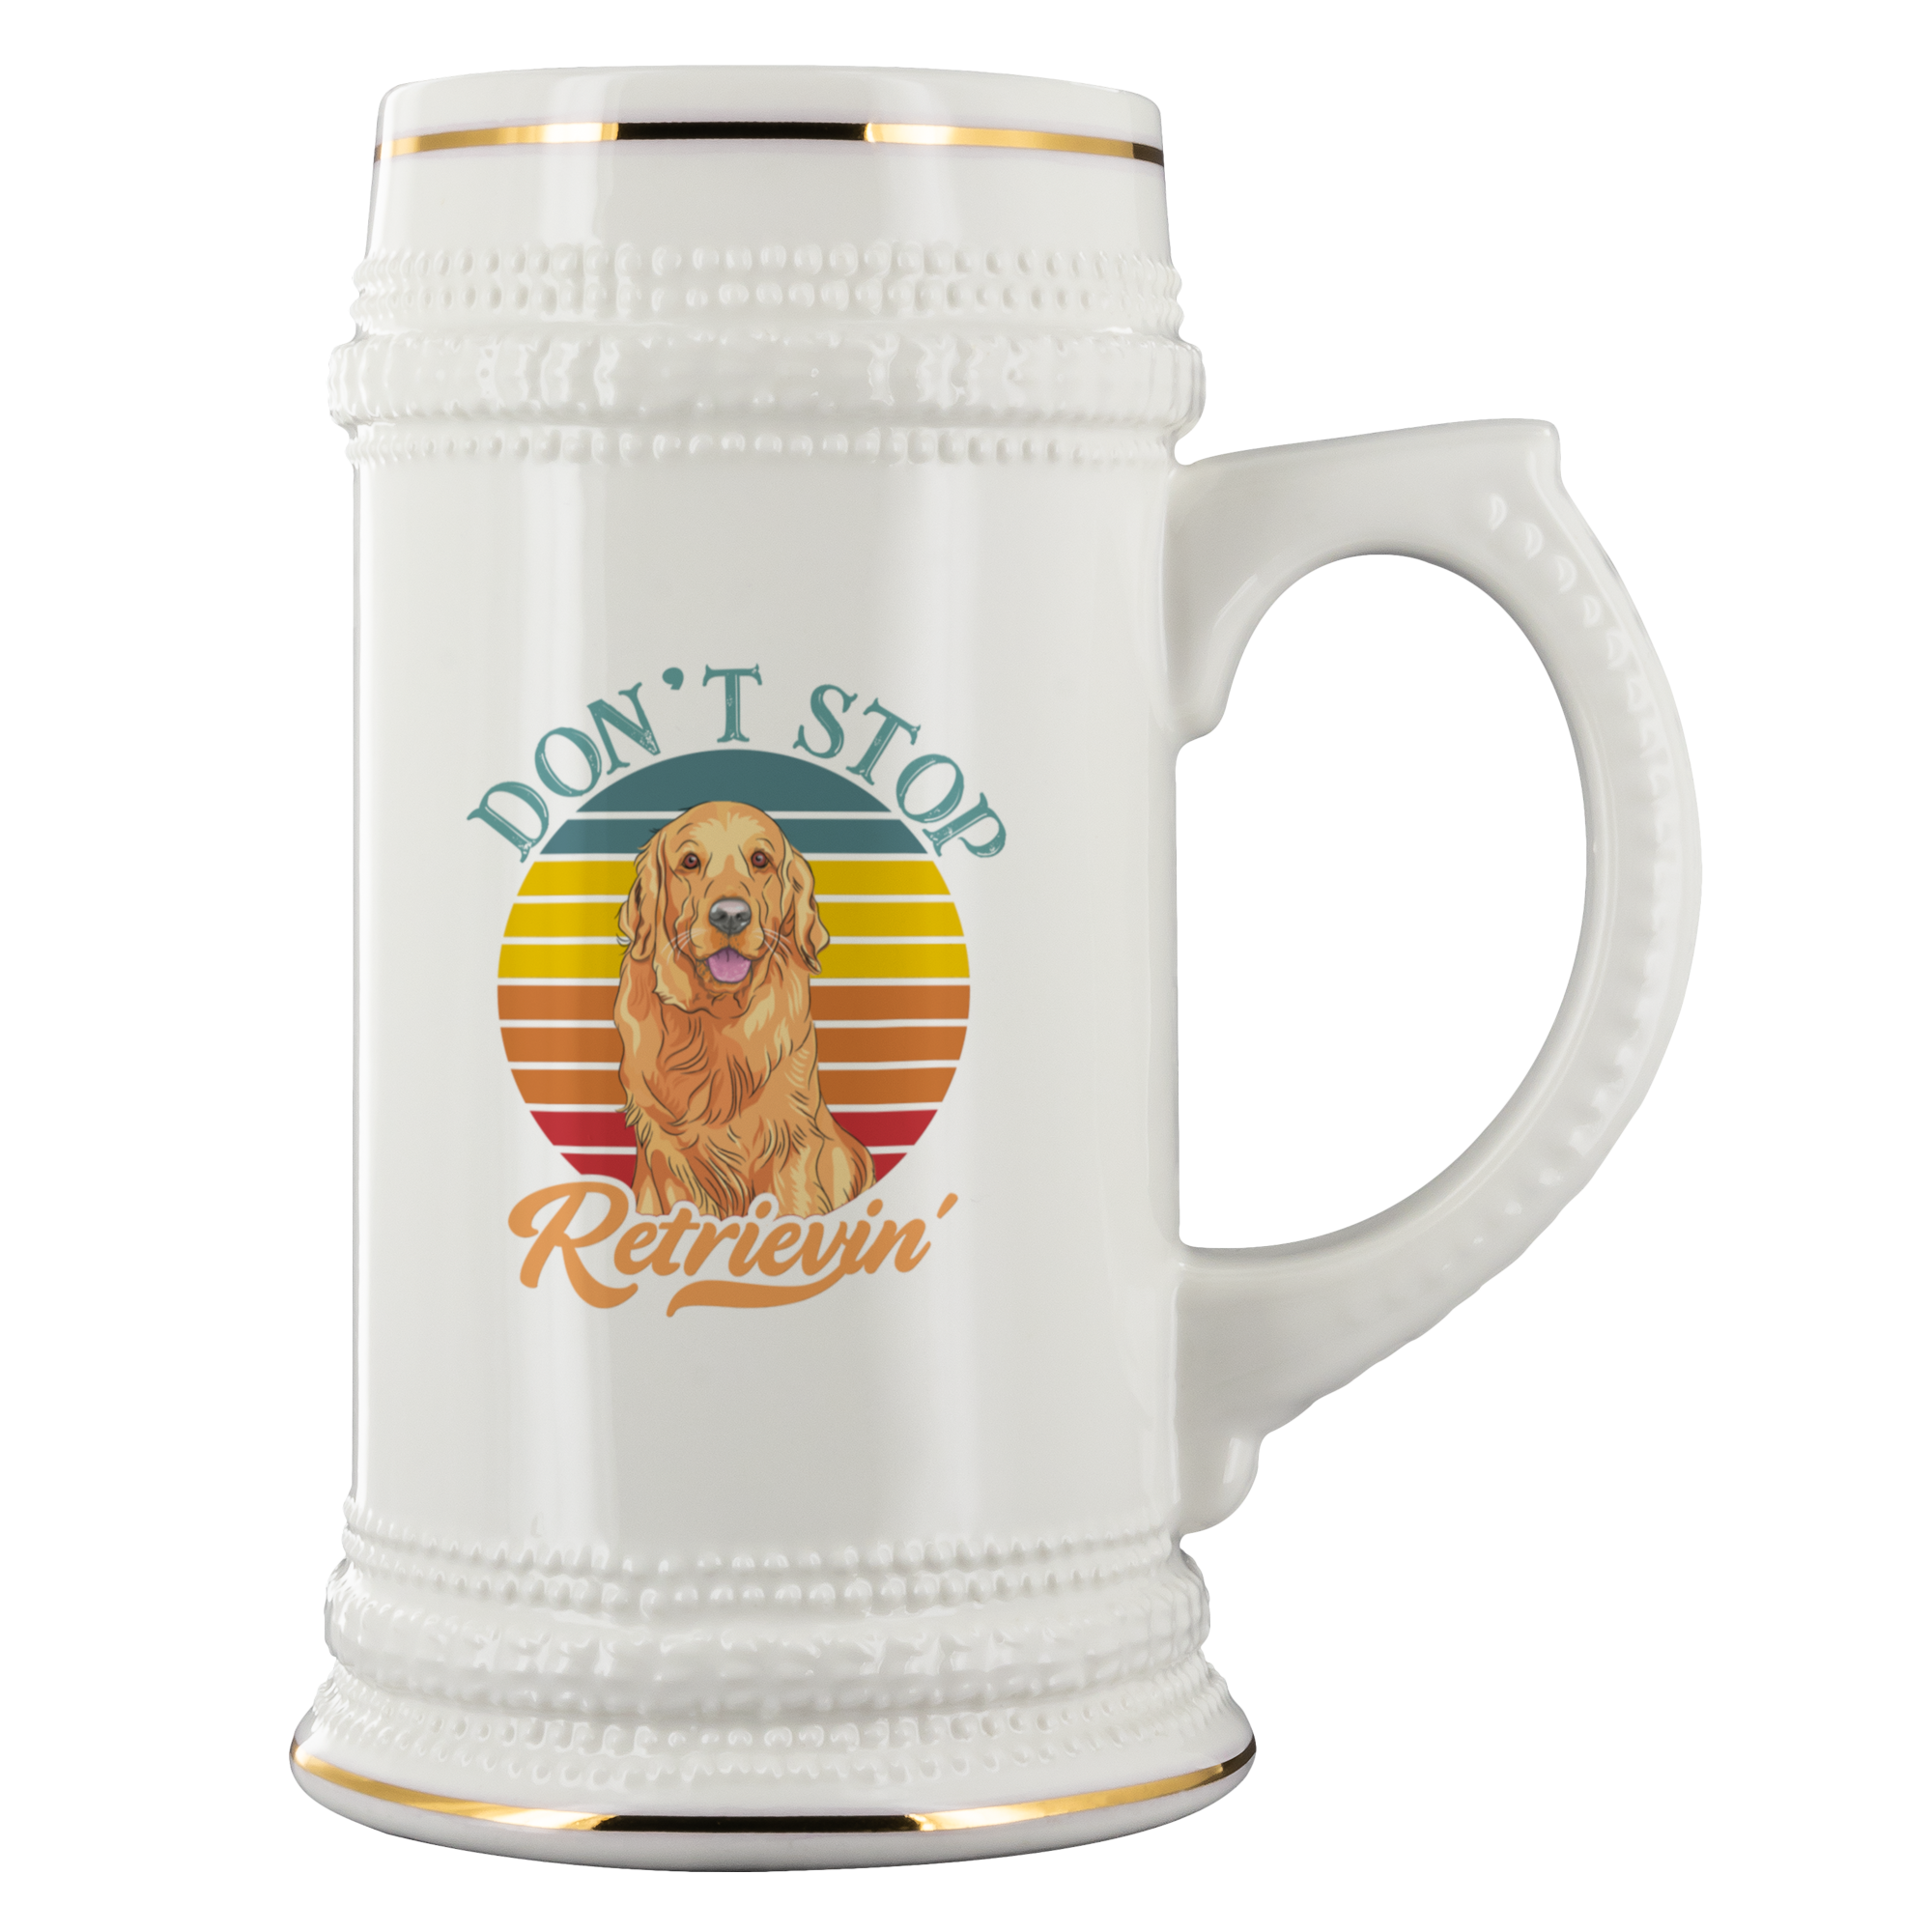 Don't Stop Retrievin' Ceramic Beer Stein White 22 oz